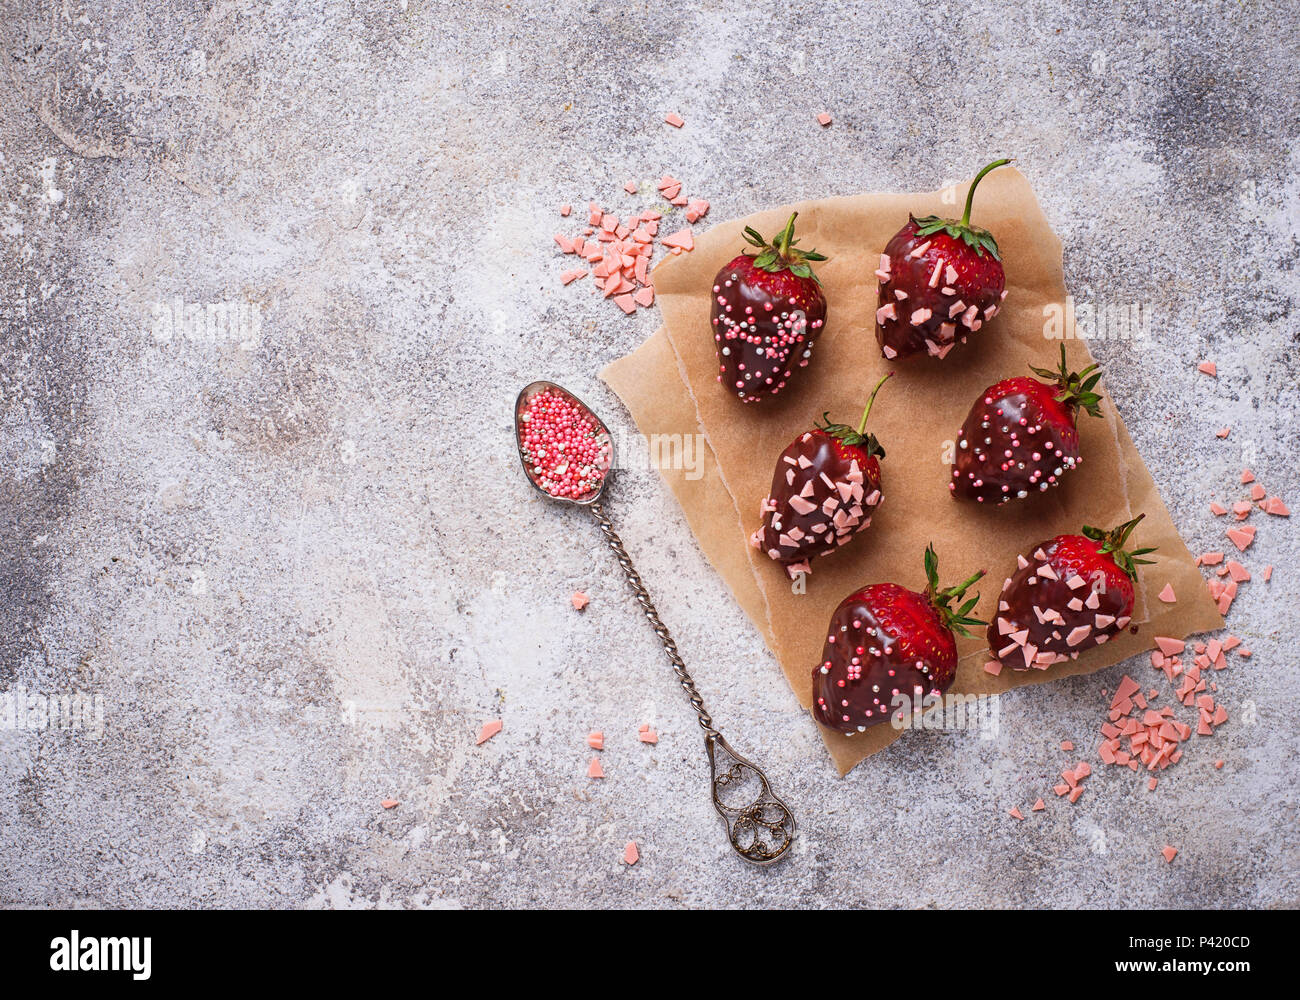 Strawberry in chocolate, delicious dessert - Stock Image